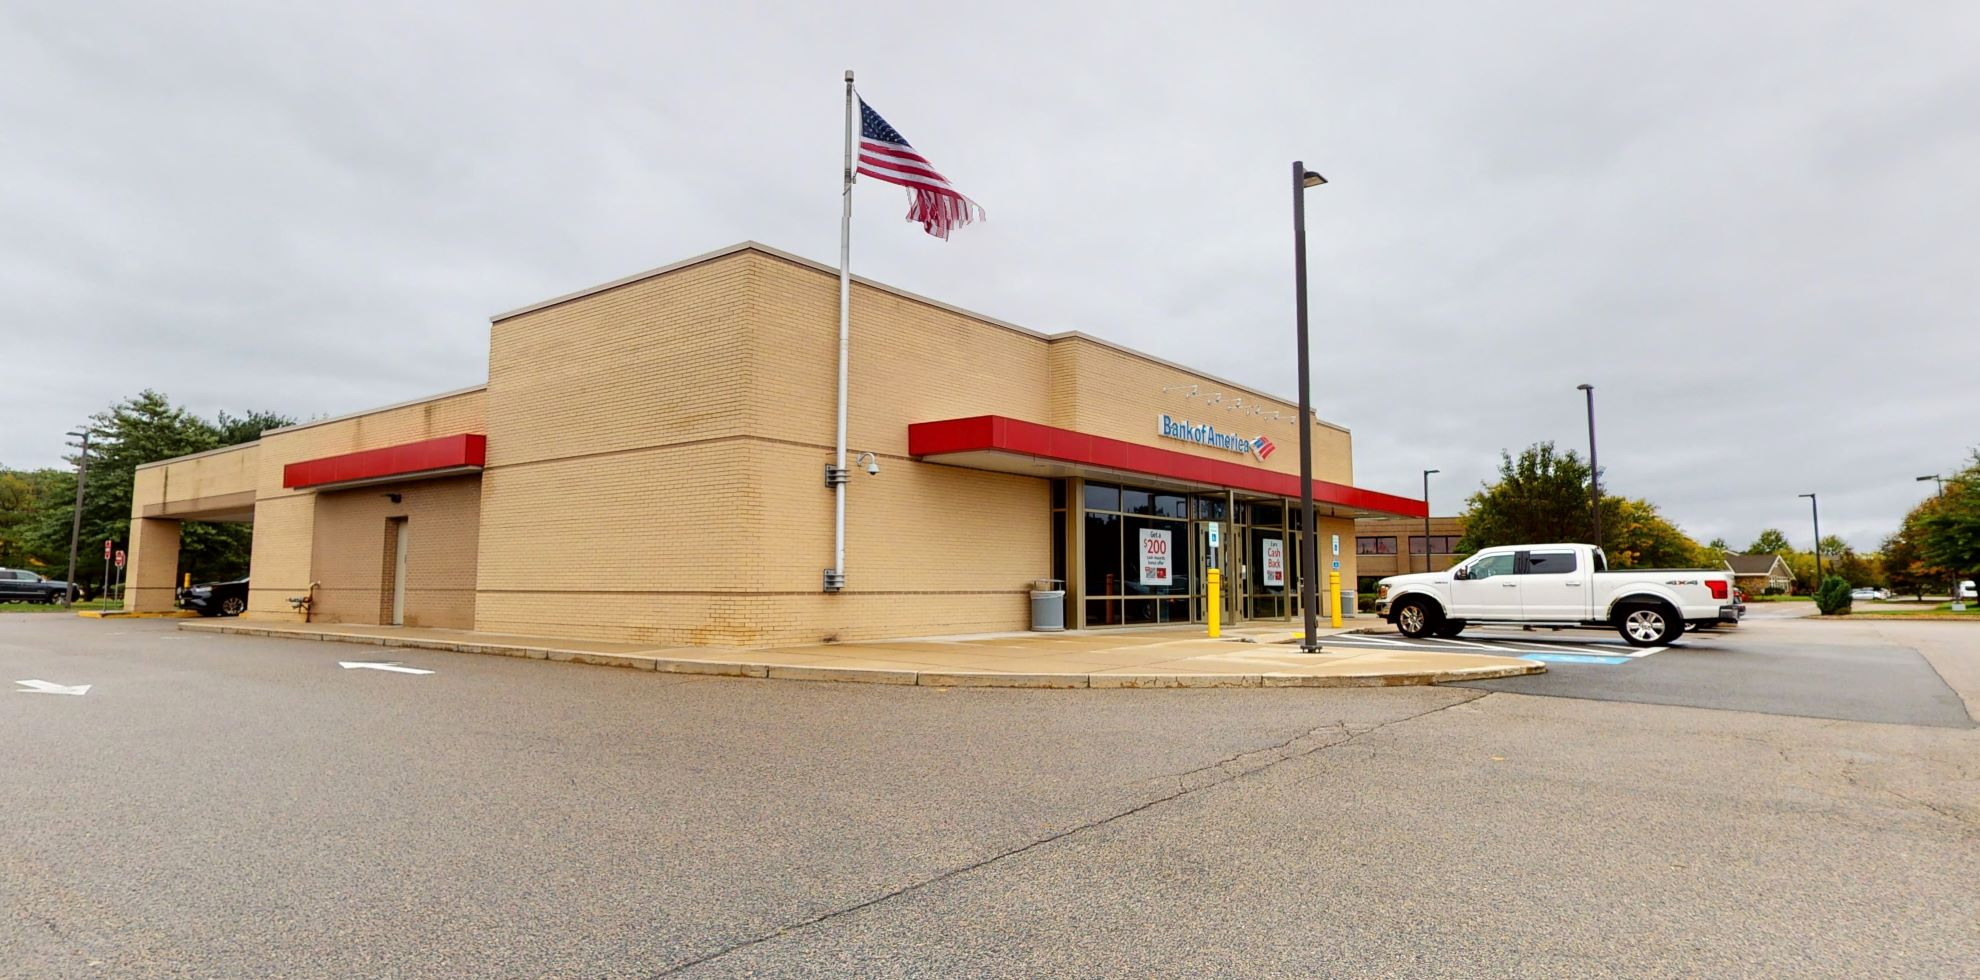 Bank of America financial center with drive-thru ATM and teller | 95 Sgt William B Terry Dr, Hingham, MA 02043